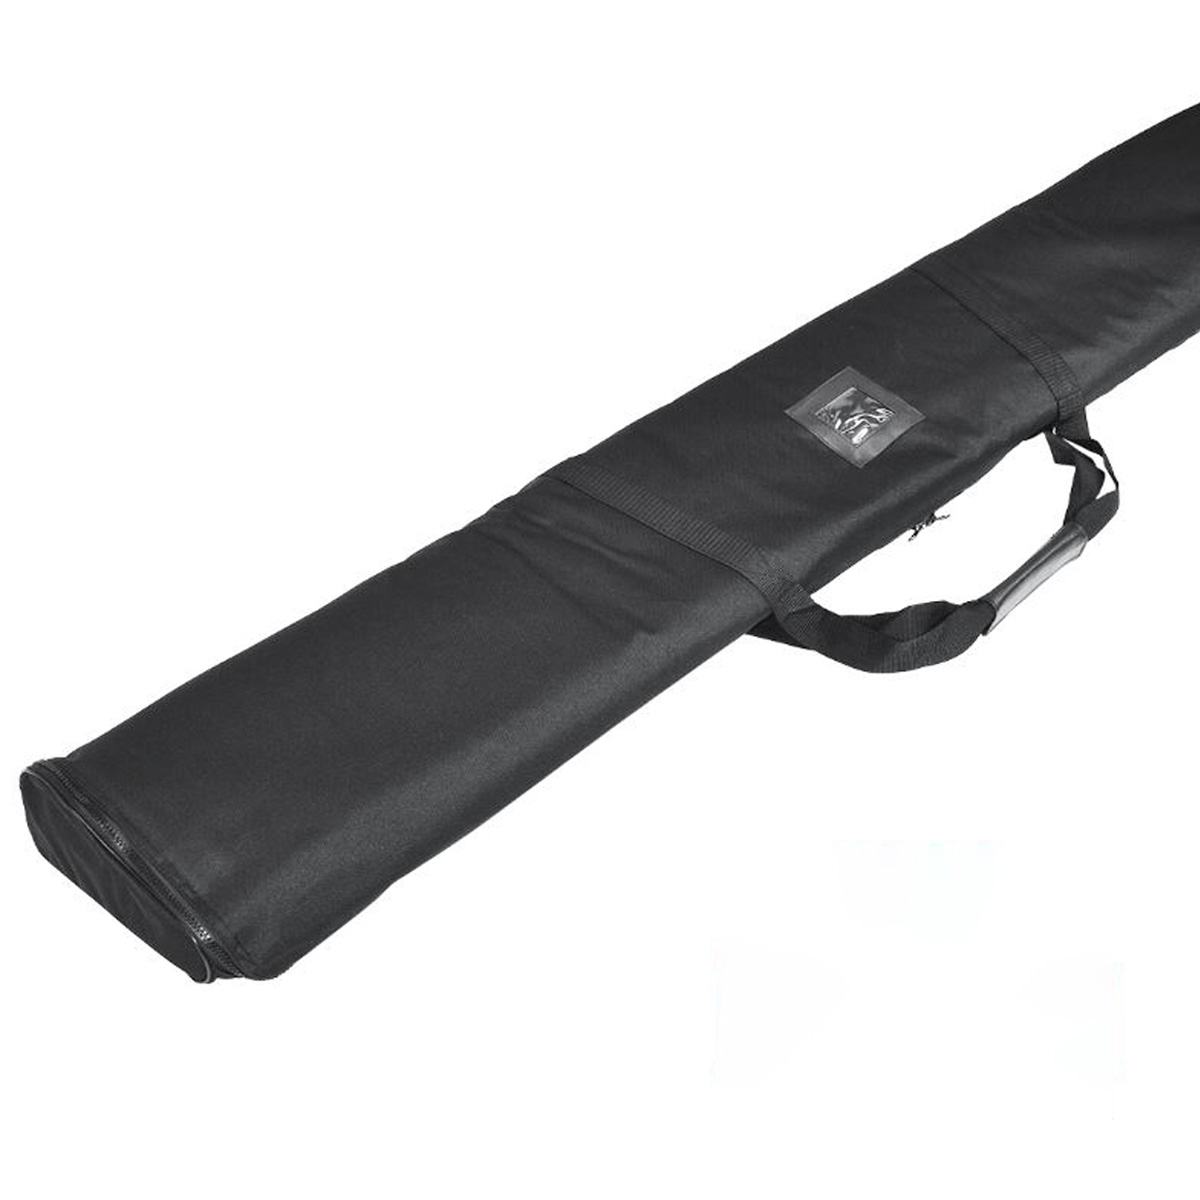 Carrying Bag Accessory for Retractable Backdrops